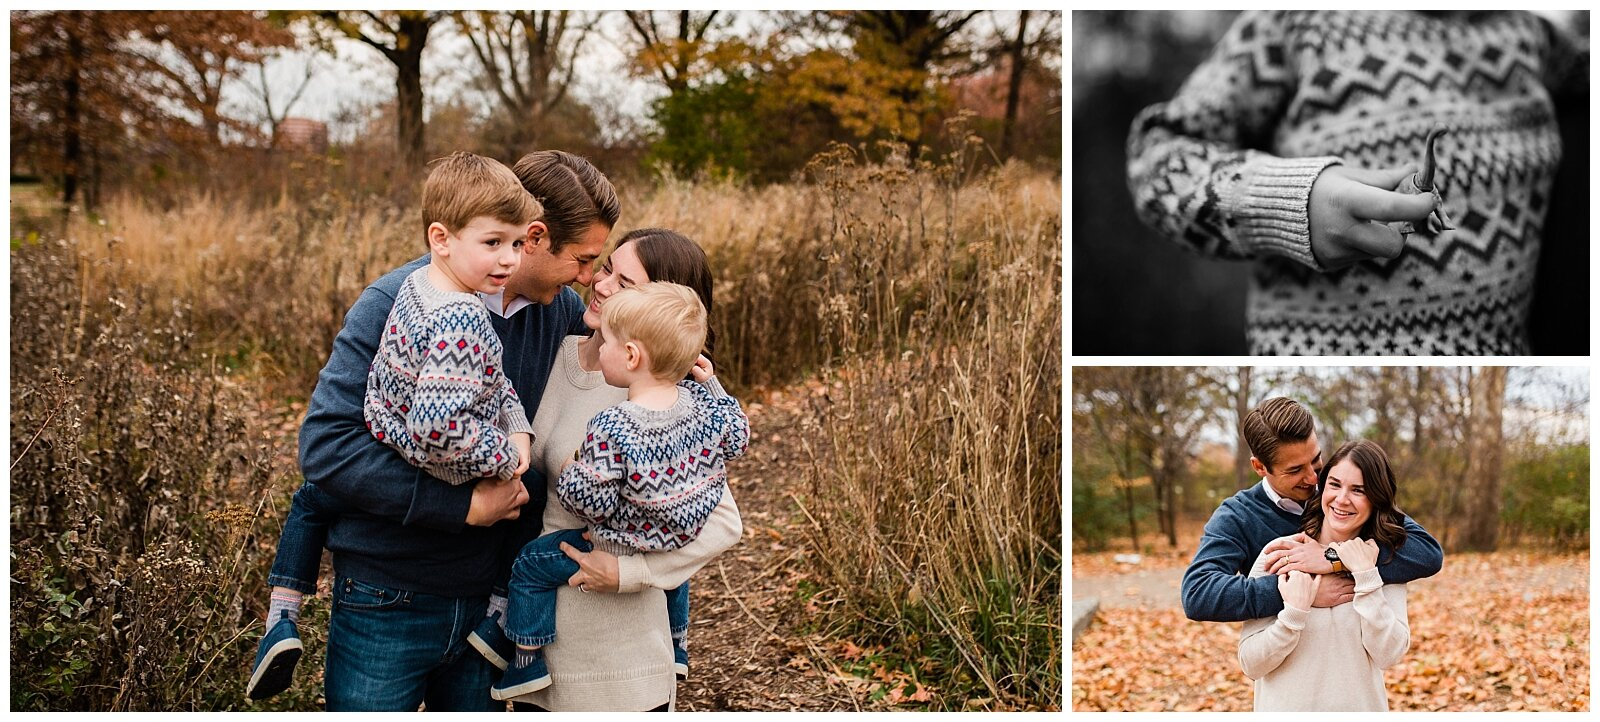 Black and white portrait of family embracing in a field, emotional family portrait, Kansas City candid family photographer, Rebecca Clair Photography